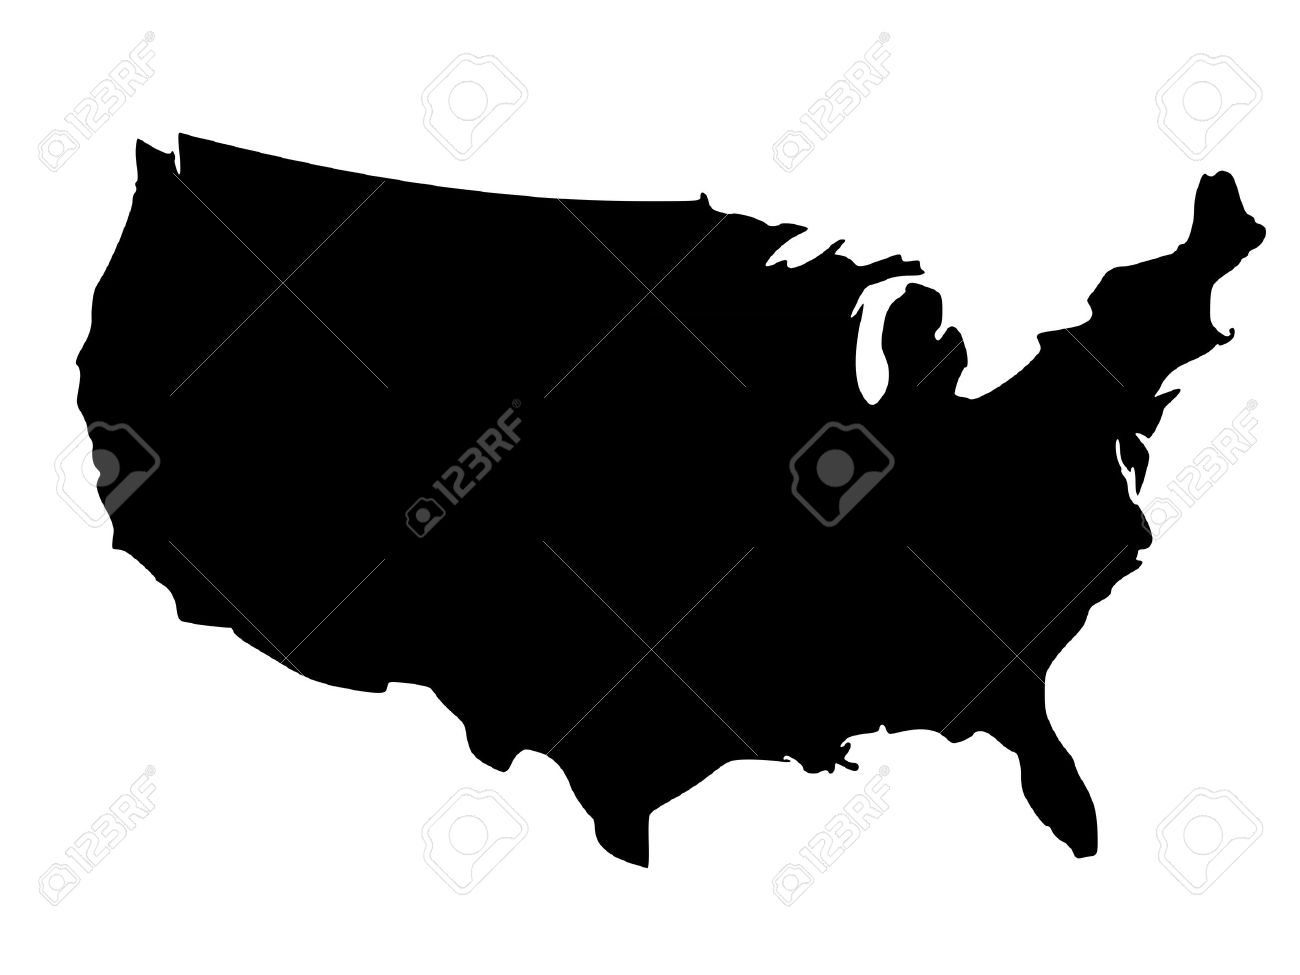 Solid Black Silhouette Map Of United States Of America Without - The us map with no states on it